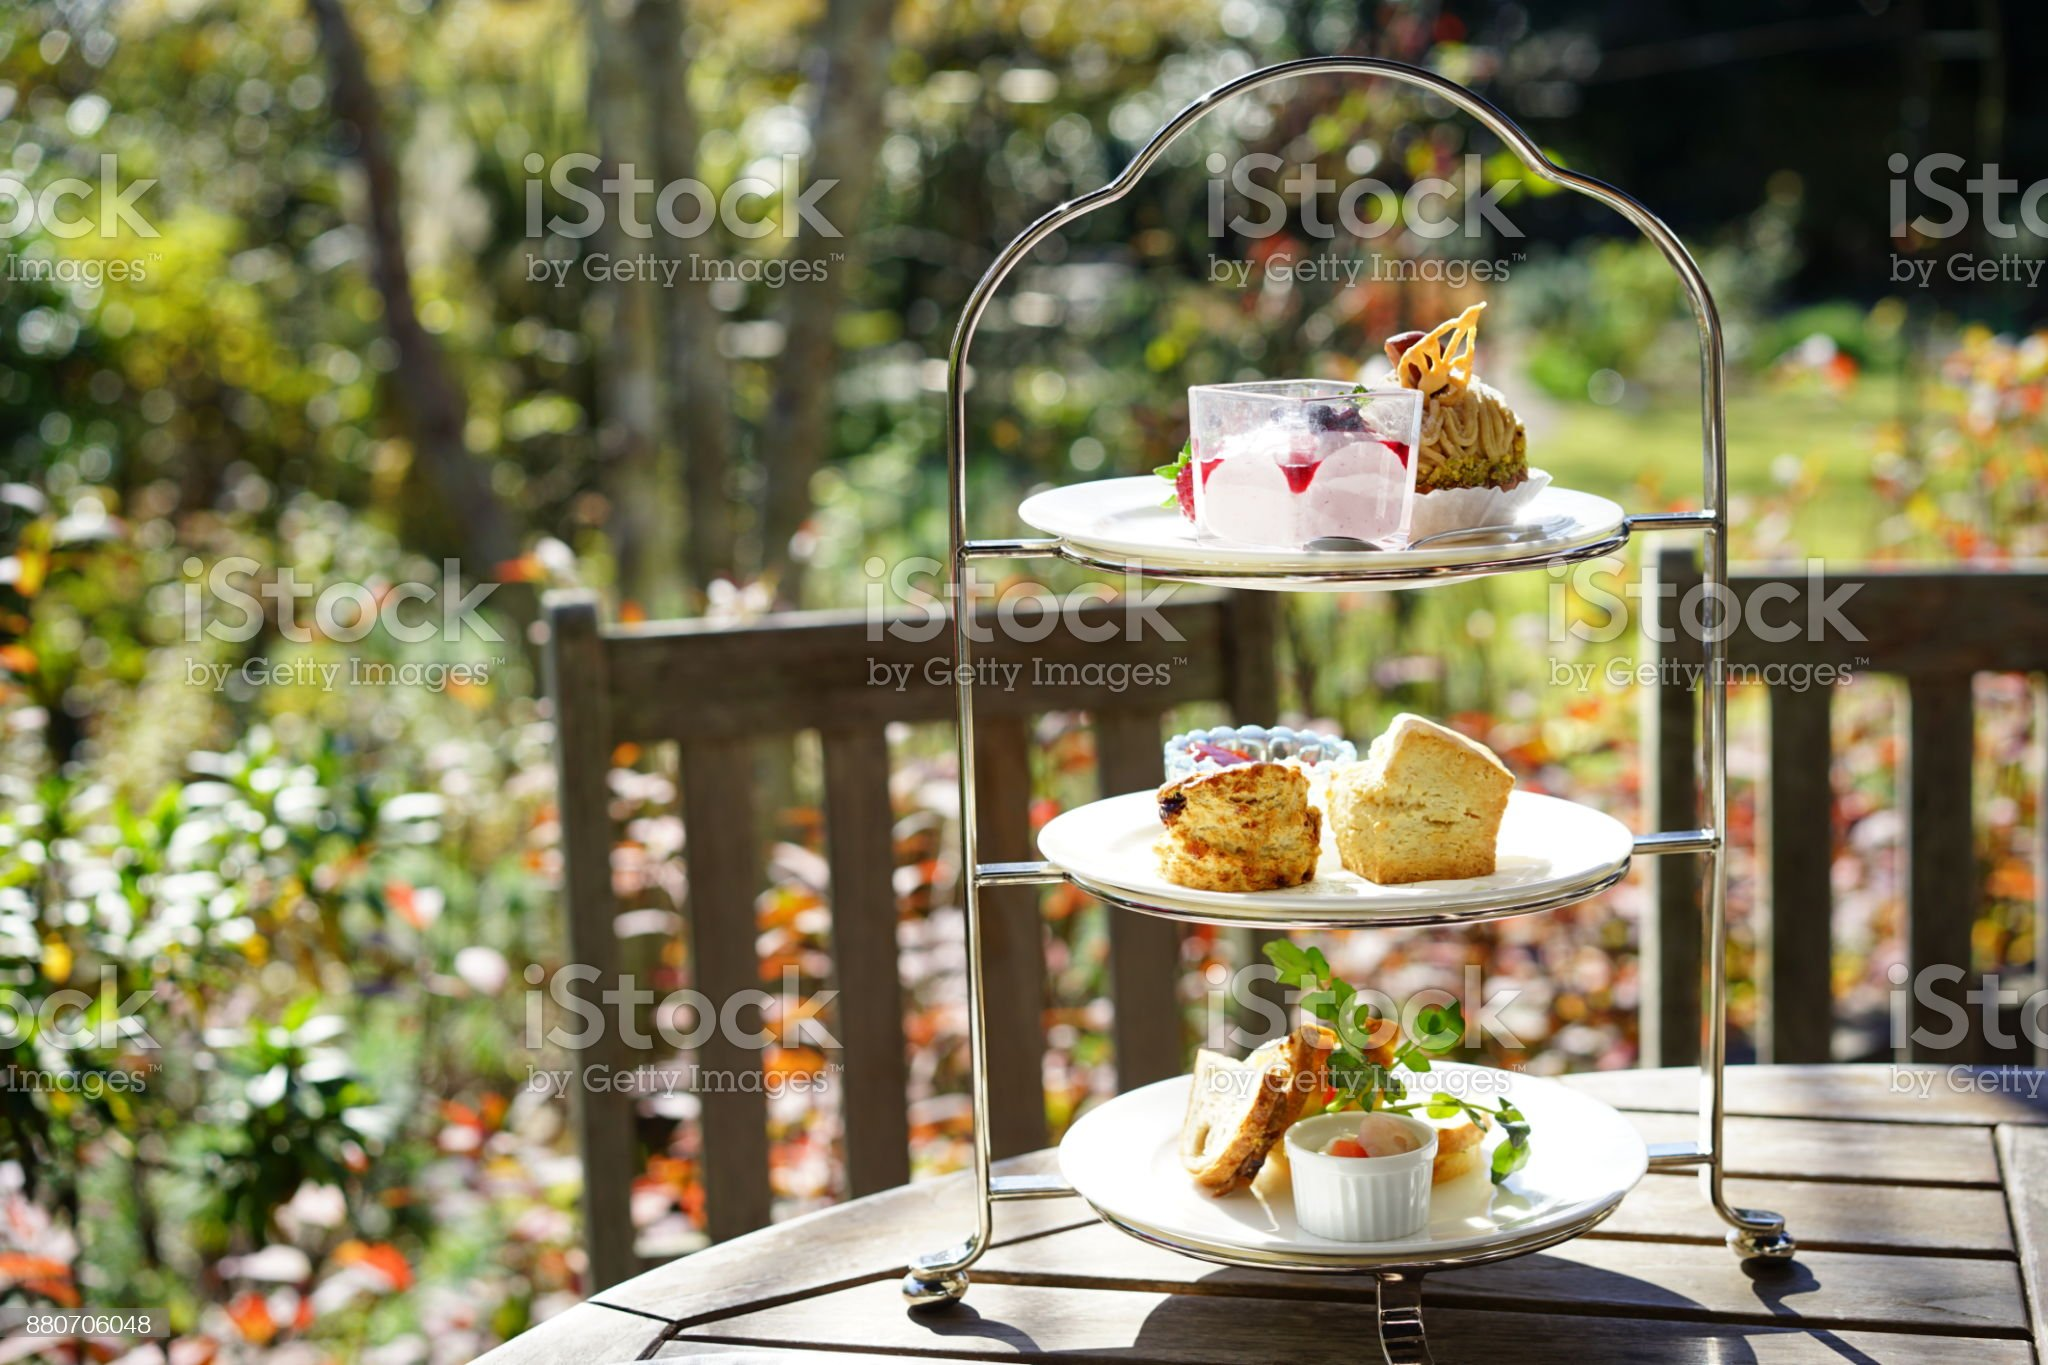 https://media.istockphoto.com/photos/afternoon-tea-in-terrace-seat-picture-id880706048?s=2048x2048